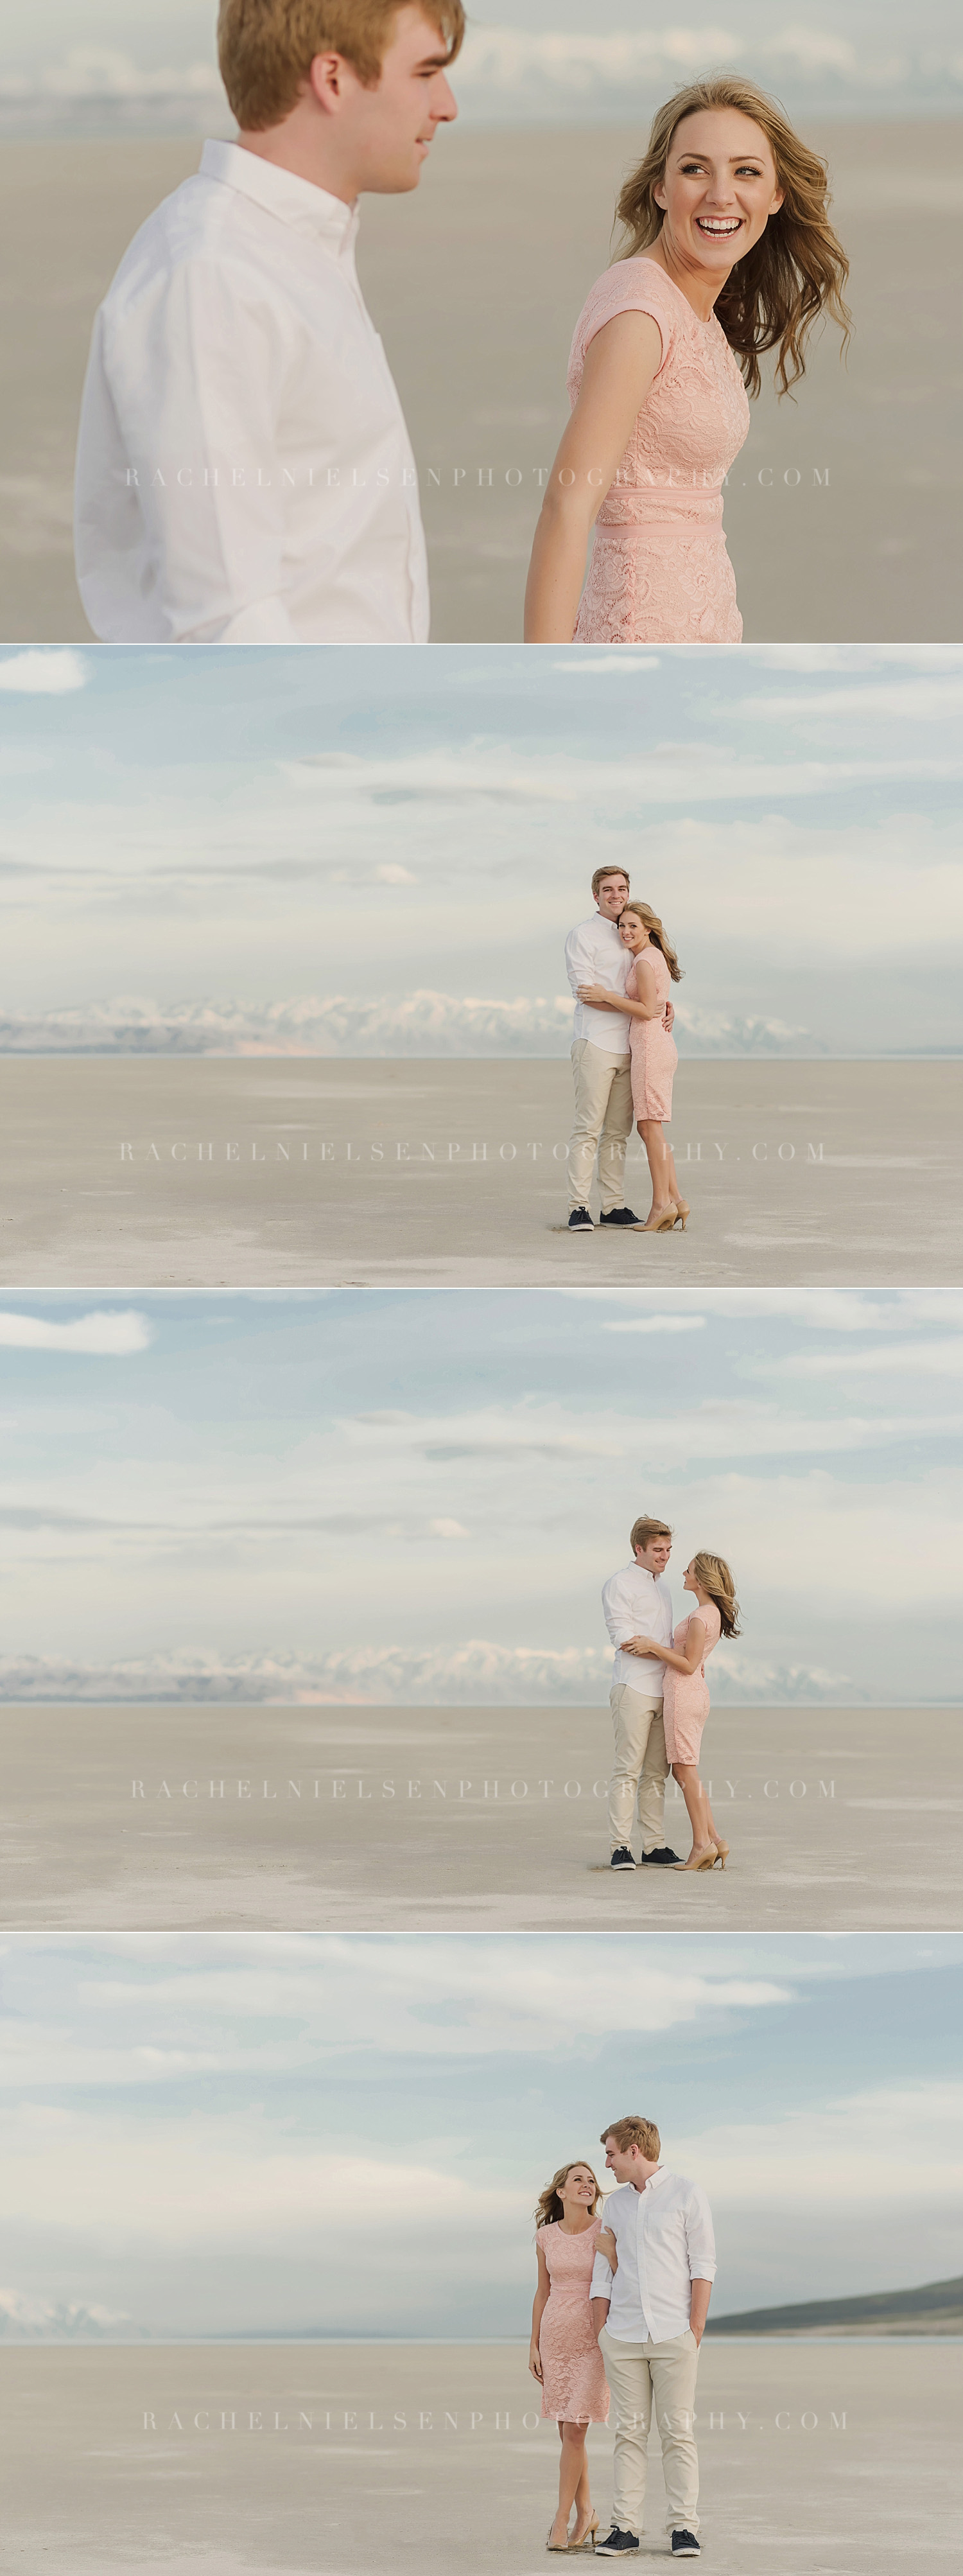 engagement-photos-Salt-Lake-Utah-photos-couple-4